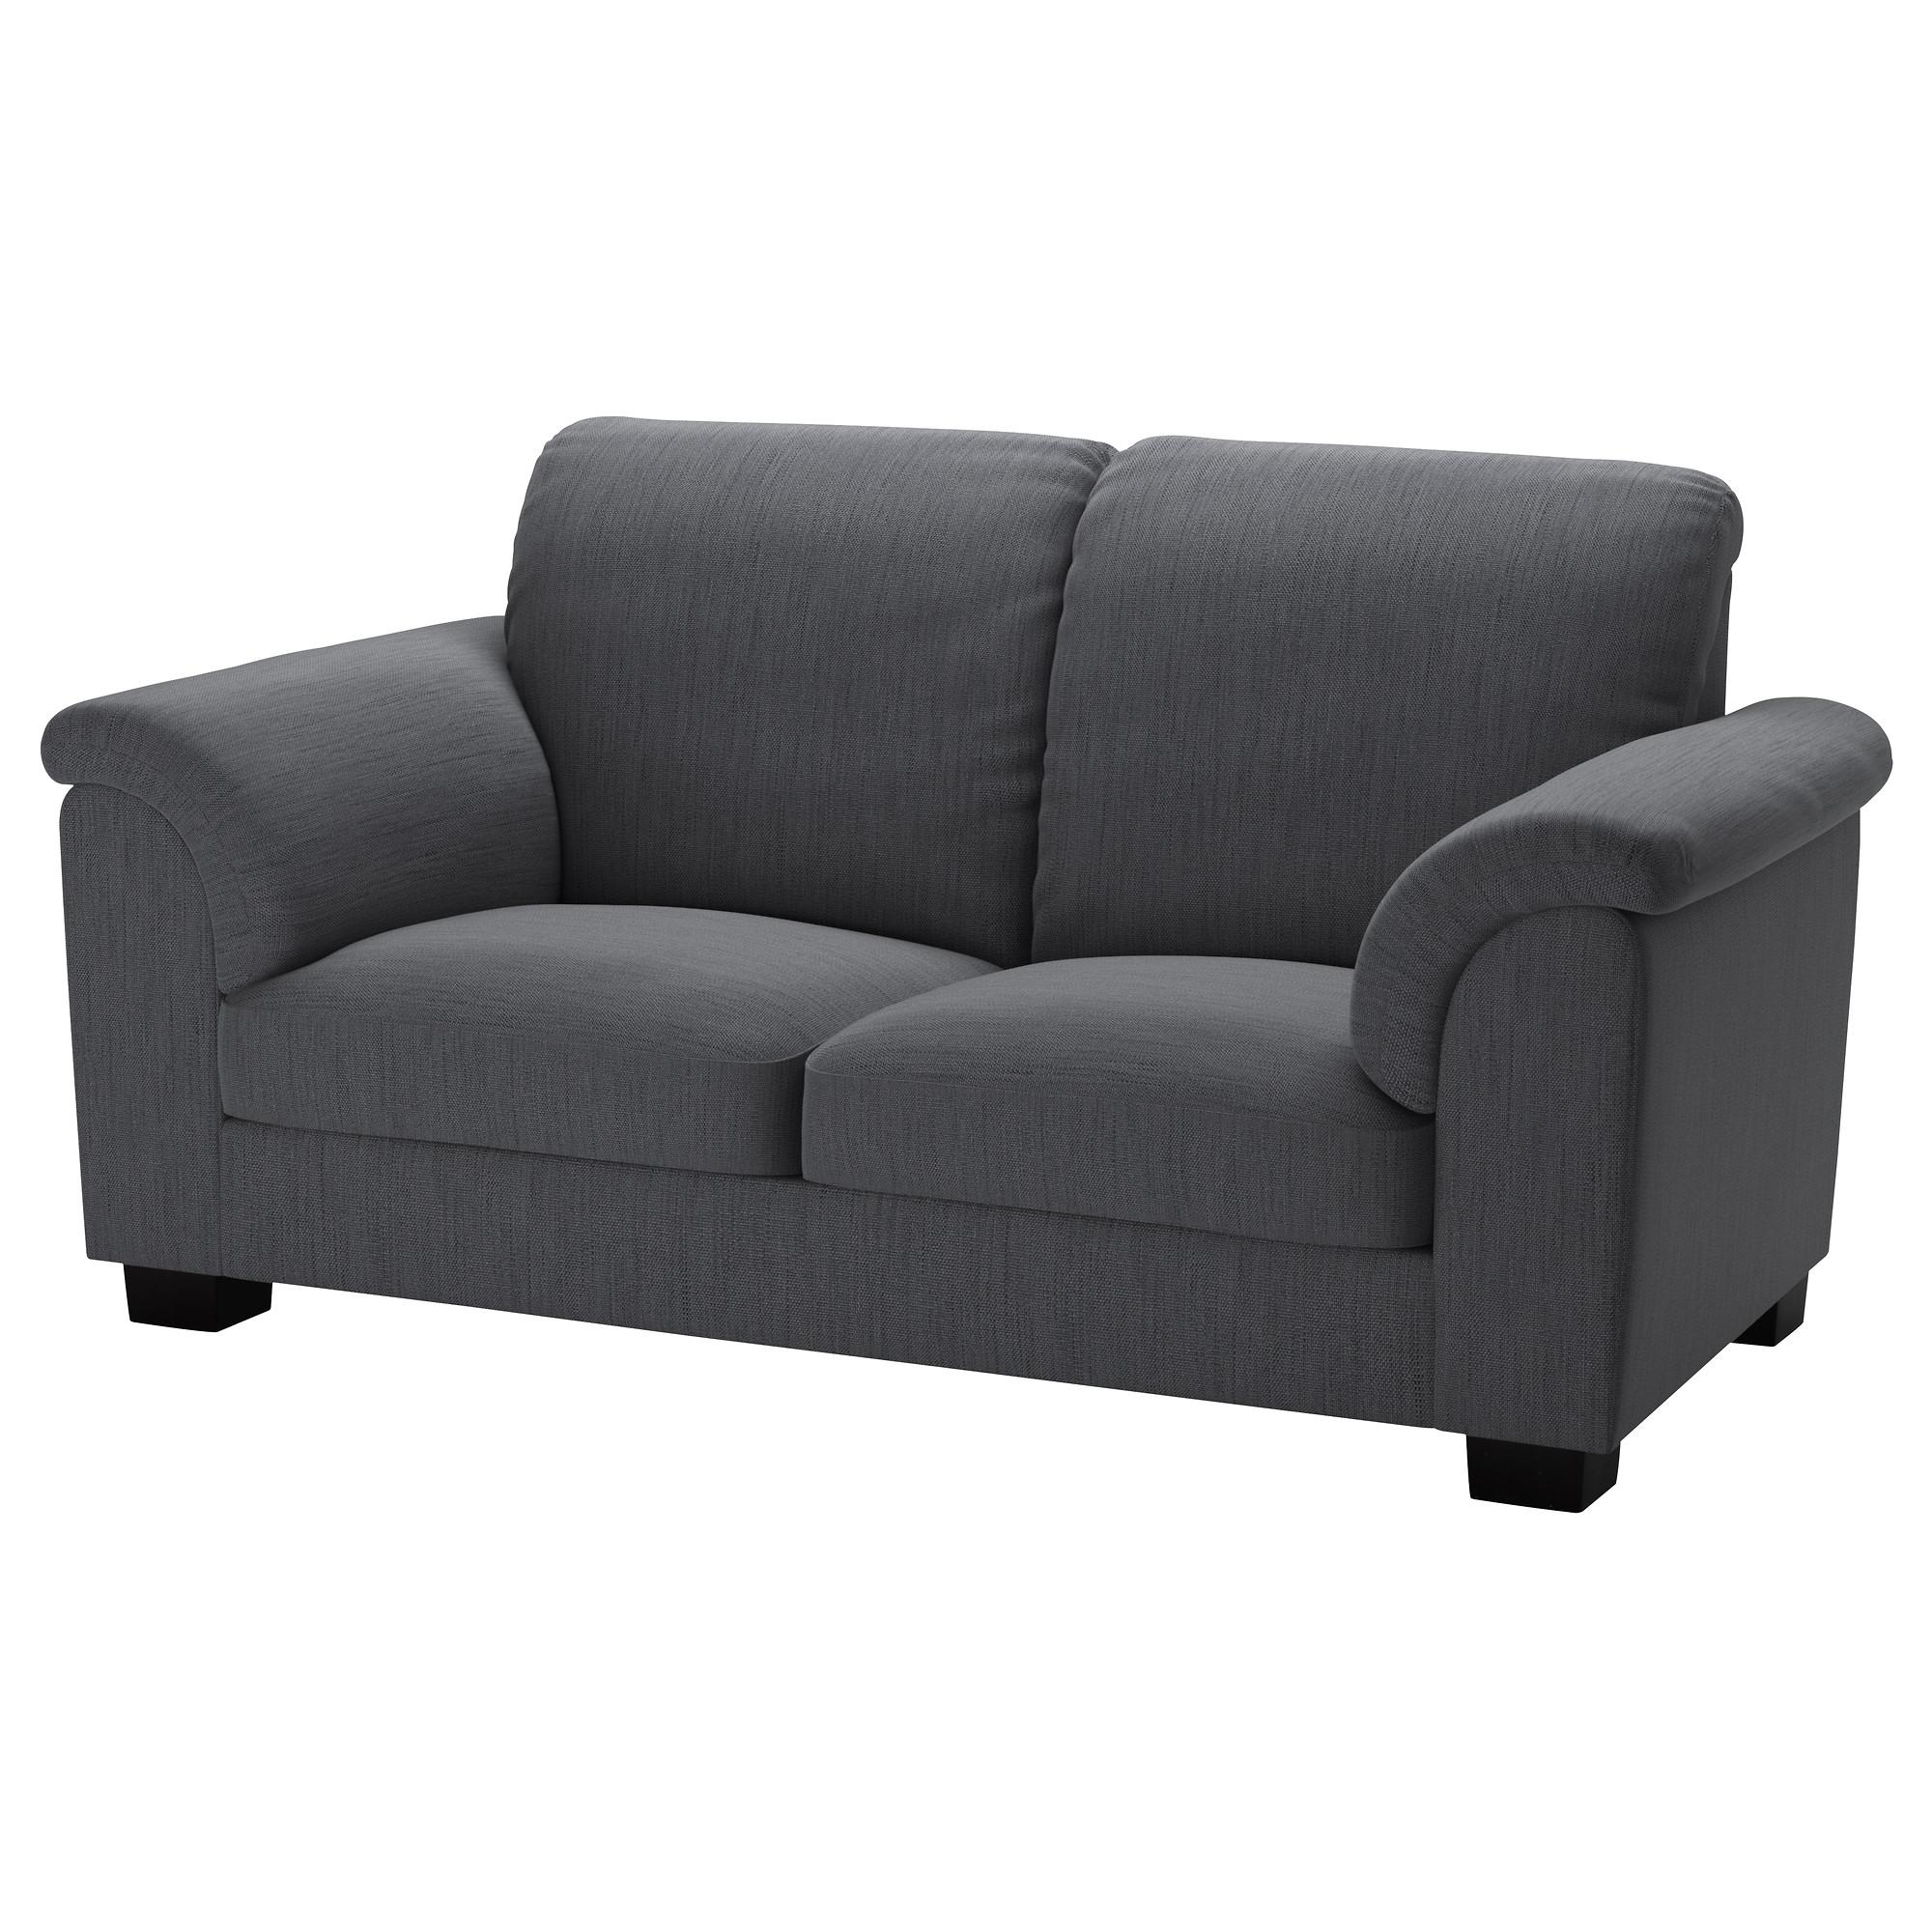 20 Choices Of Ikea Two Seater Sofas Sofa Ideas